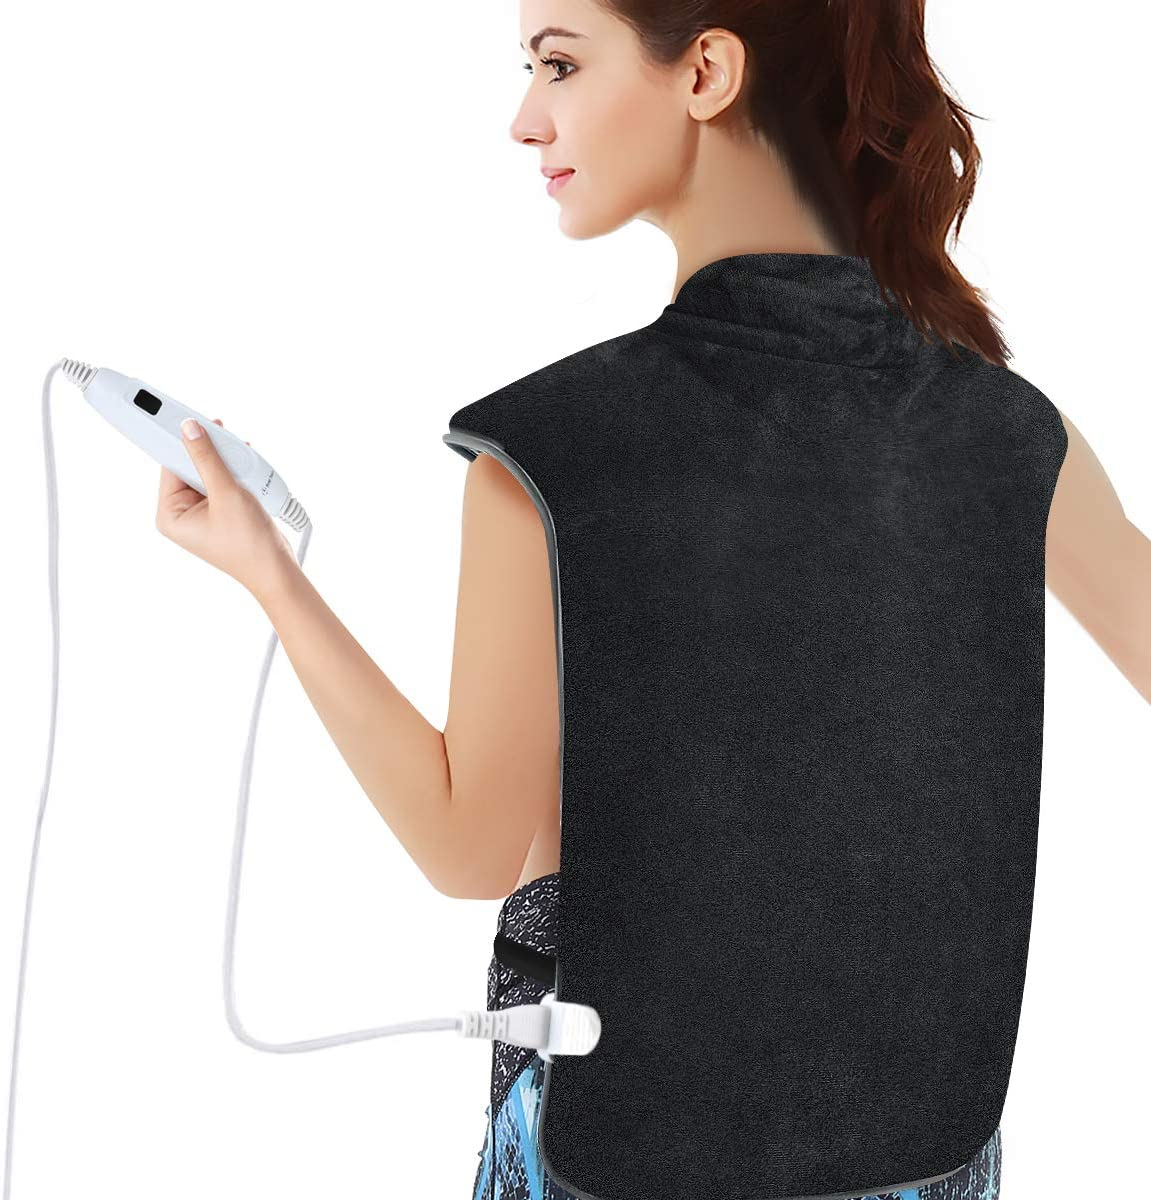 """Heating Pad for for Back and Shoulder Pain,MOICO Heating Wrap for Soothing Muscle Pain and Tension Relief Therapy with 3 Hour Auto Off, 7,Temperature Settings,XXX-Large Electric Heating Pad 17"""" x 33"""